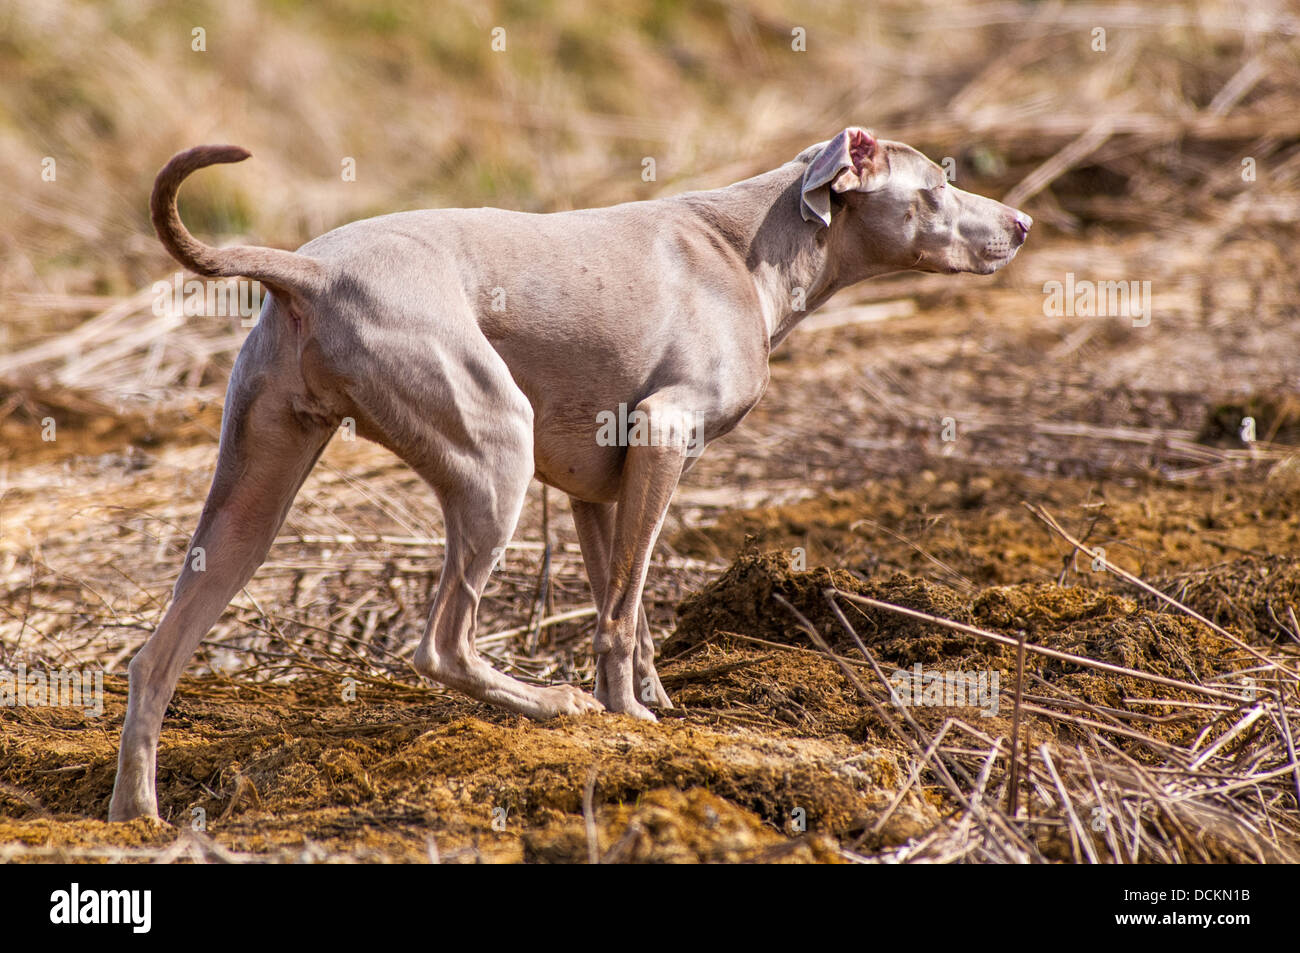 A Weimaraner dog; a Hunter Pointer Retriever (HPR) which is often used as a working gun dog - Stock Image